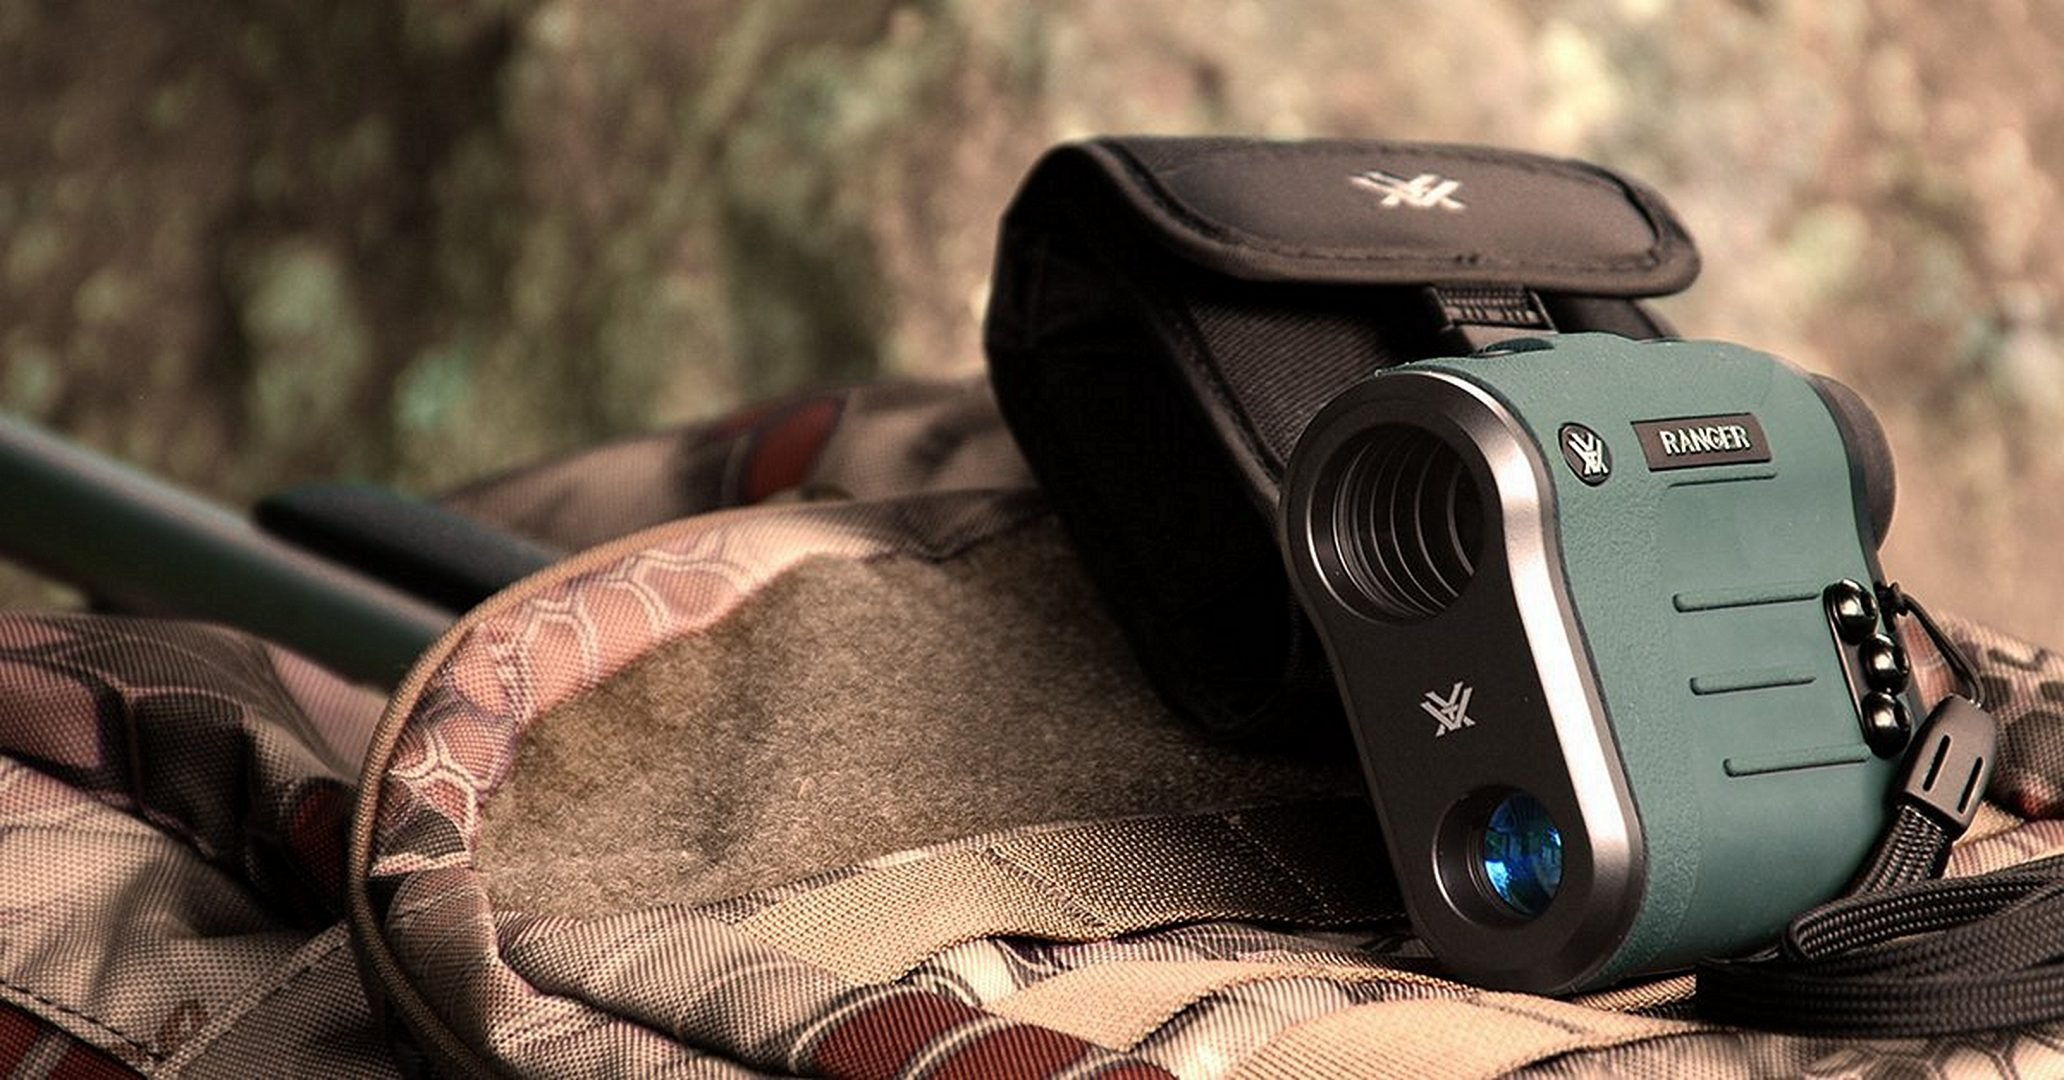 Best Rangefinders of 2021: Top Laser Devices for the Money